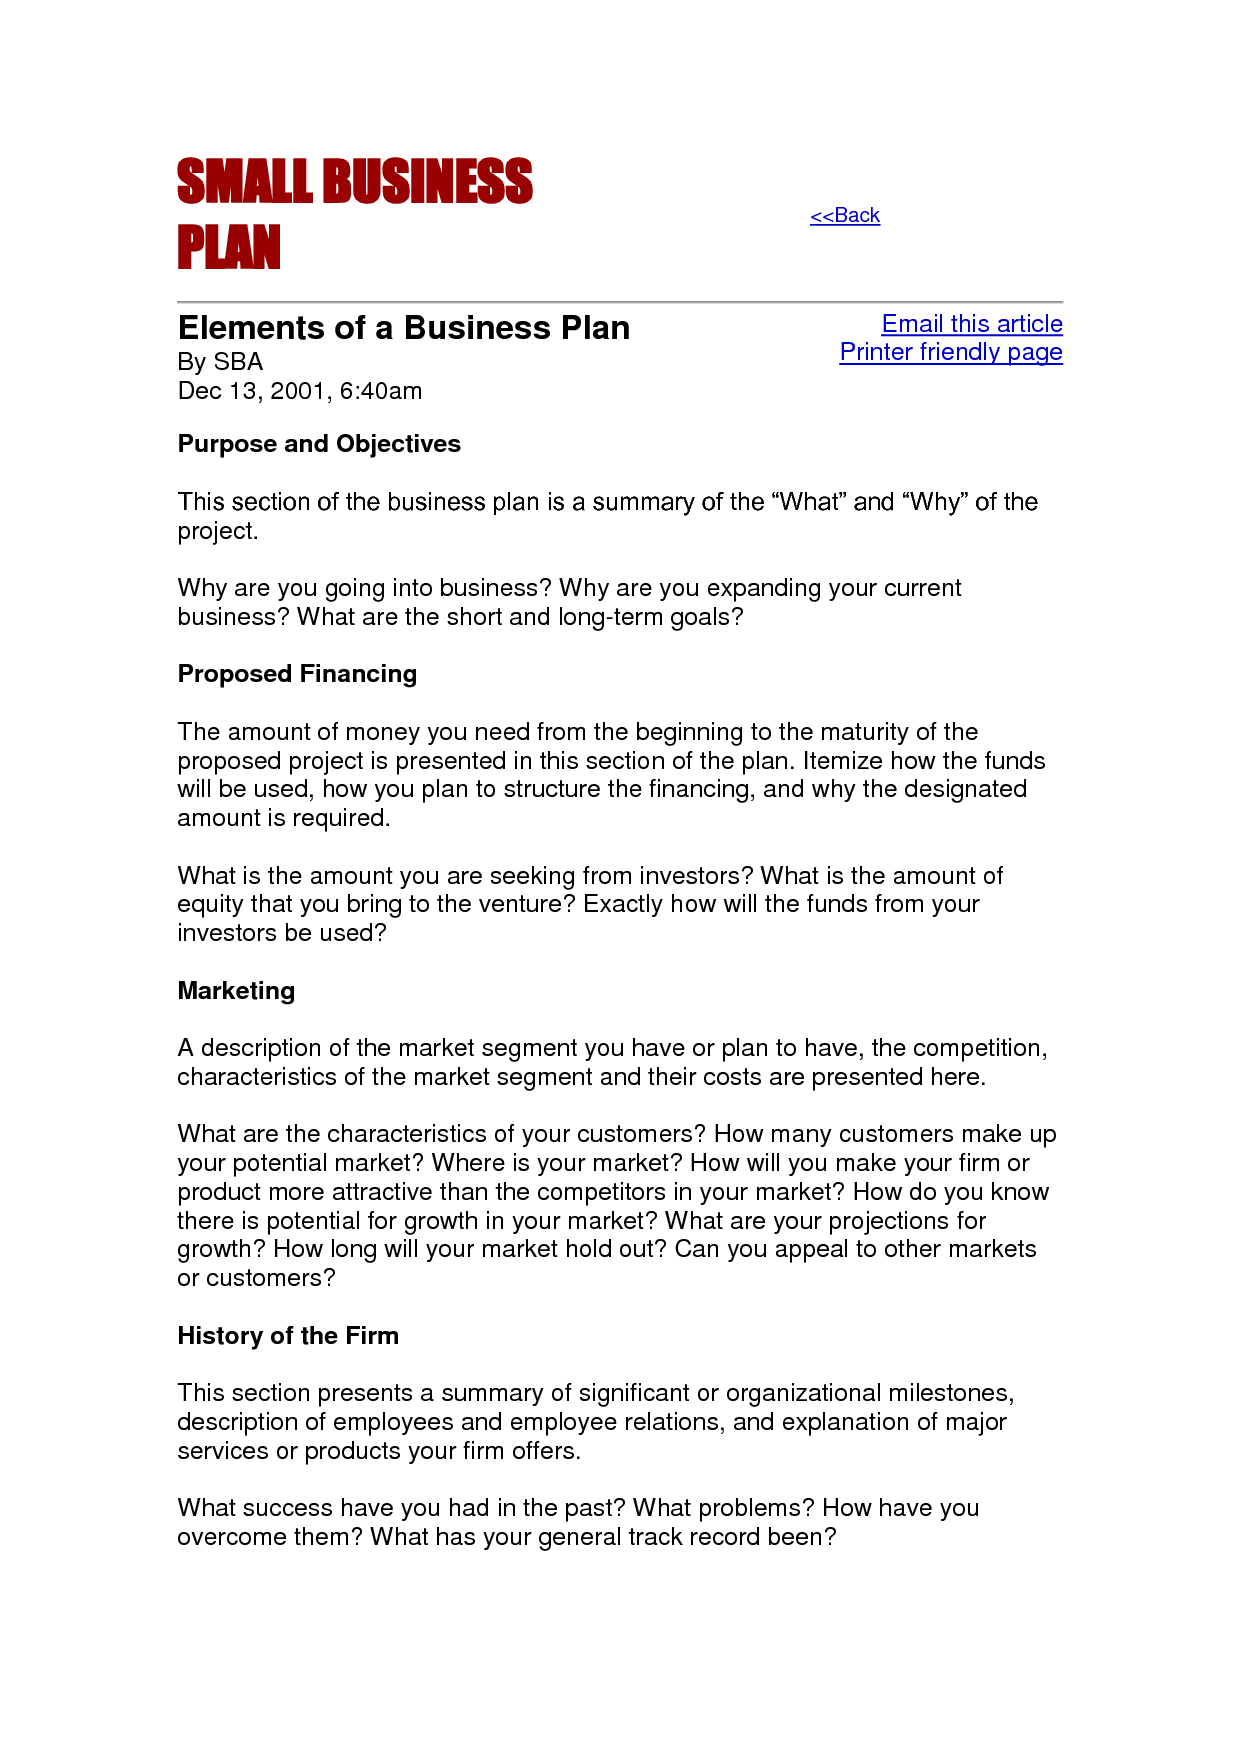 Small business proposal template building a stronger small small business proposal template building a stronger small business community at topgovernmentgrantssbdcp wajeb Image collections